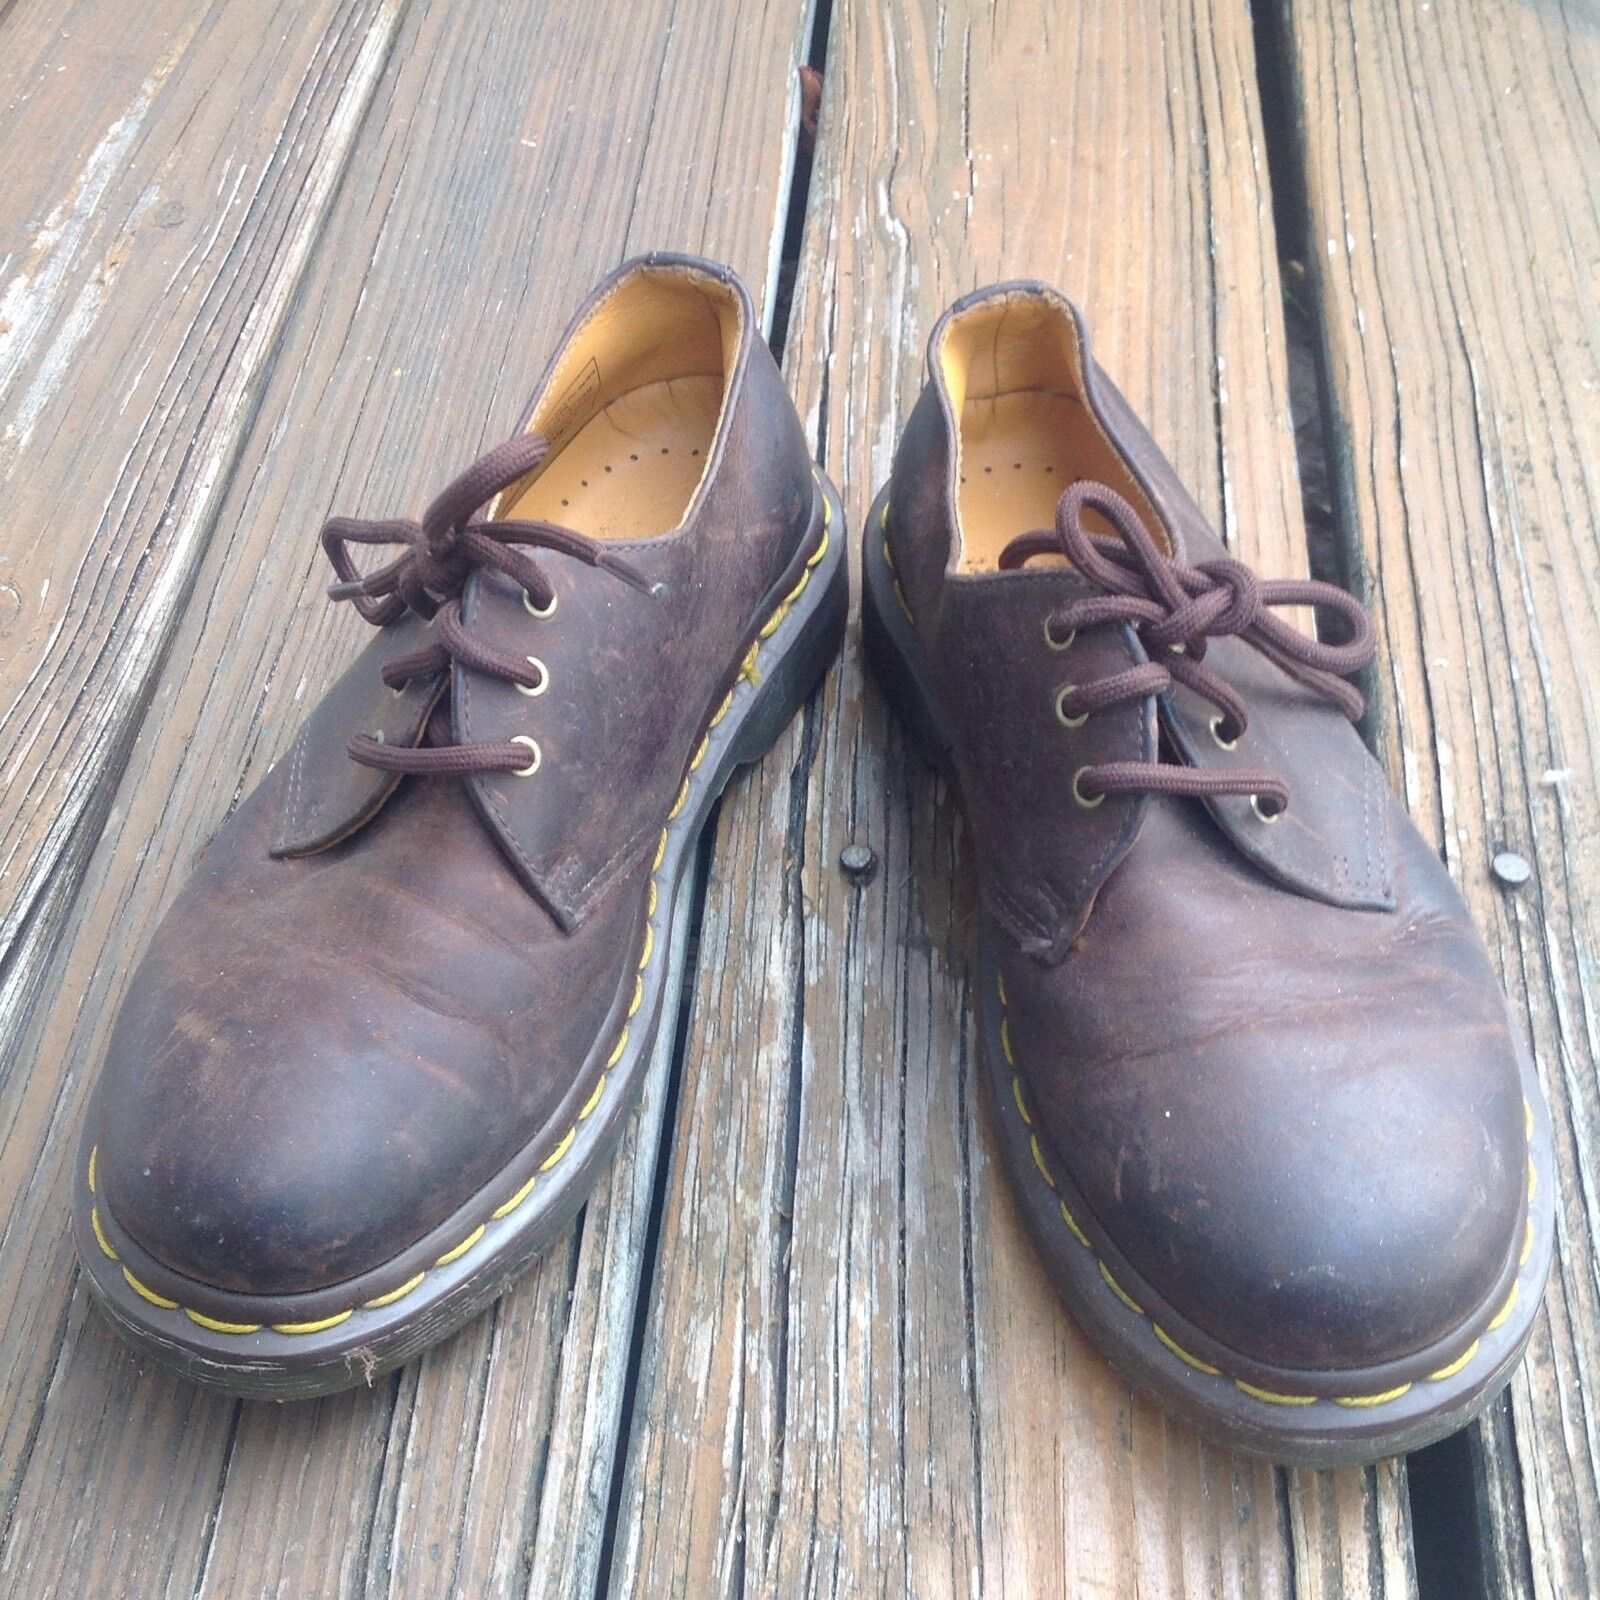 Dr Martens Docs Brown Oxford Leather shoes Mens 4 Womens 5 EUR 36 11838 3 Eye